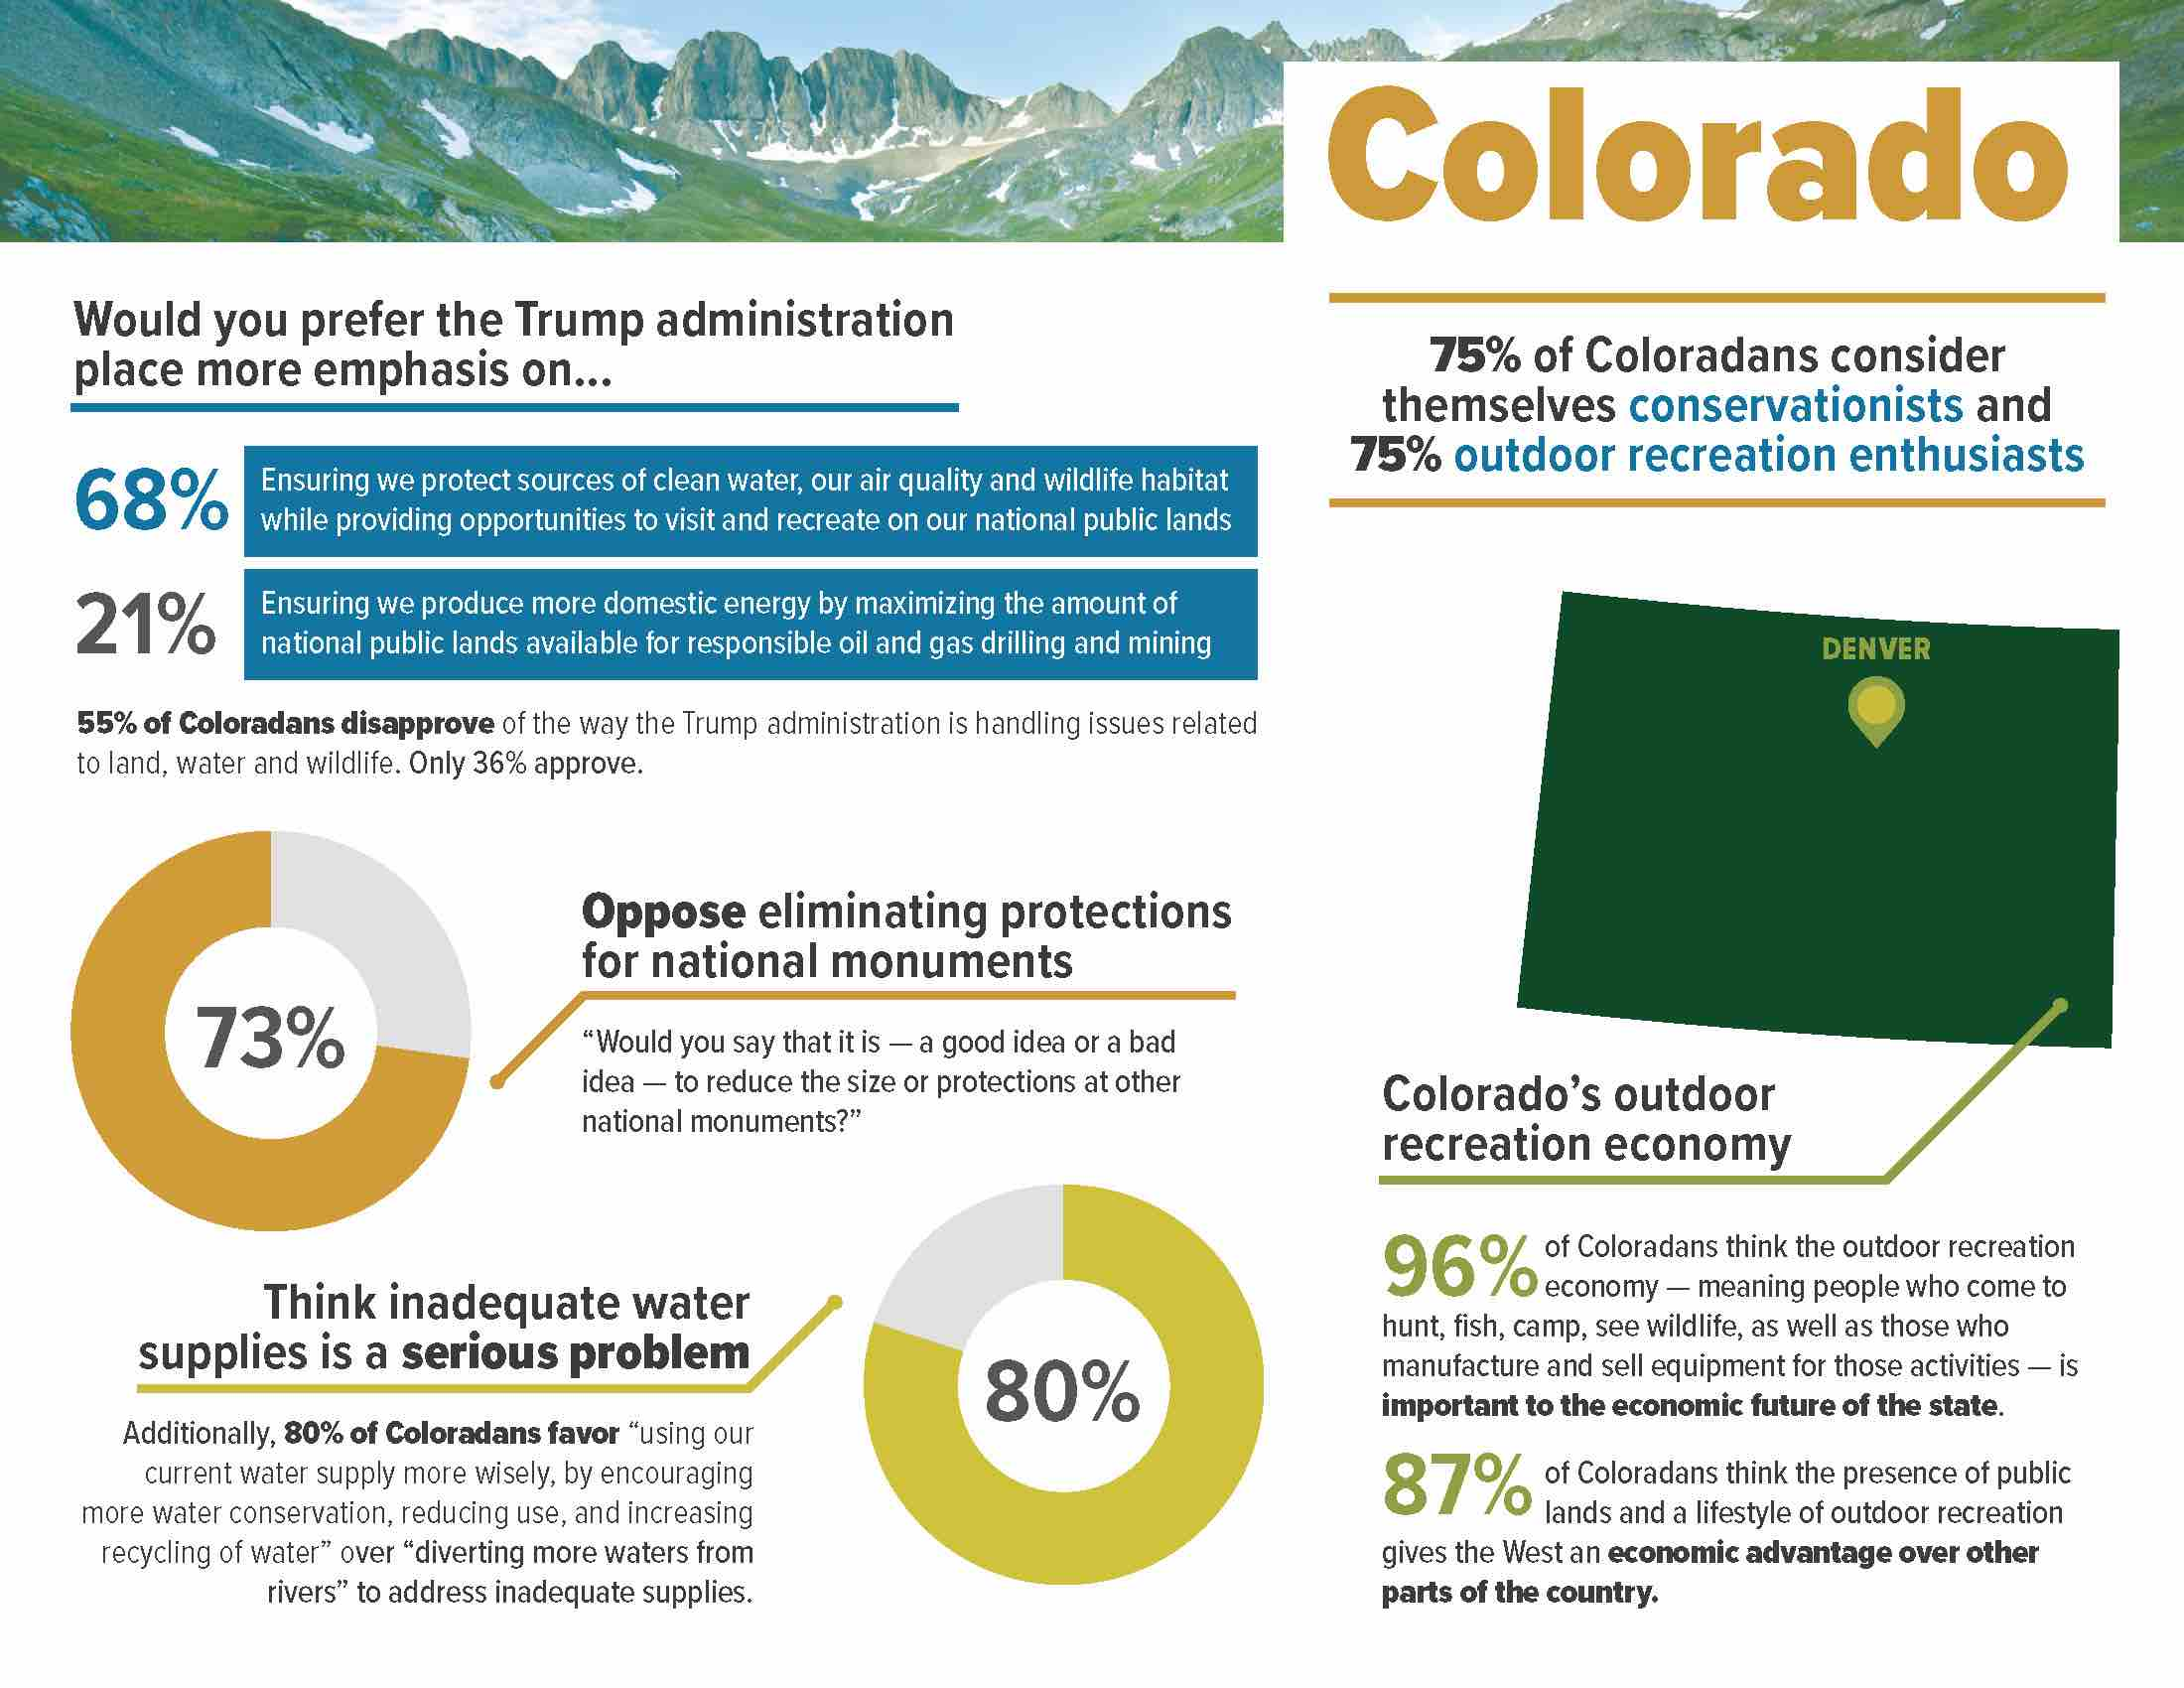 ConservationintheWest_2018__StateFactSheet_Colorado